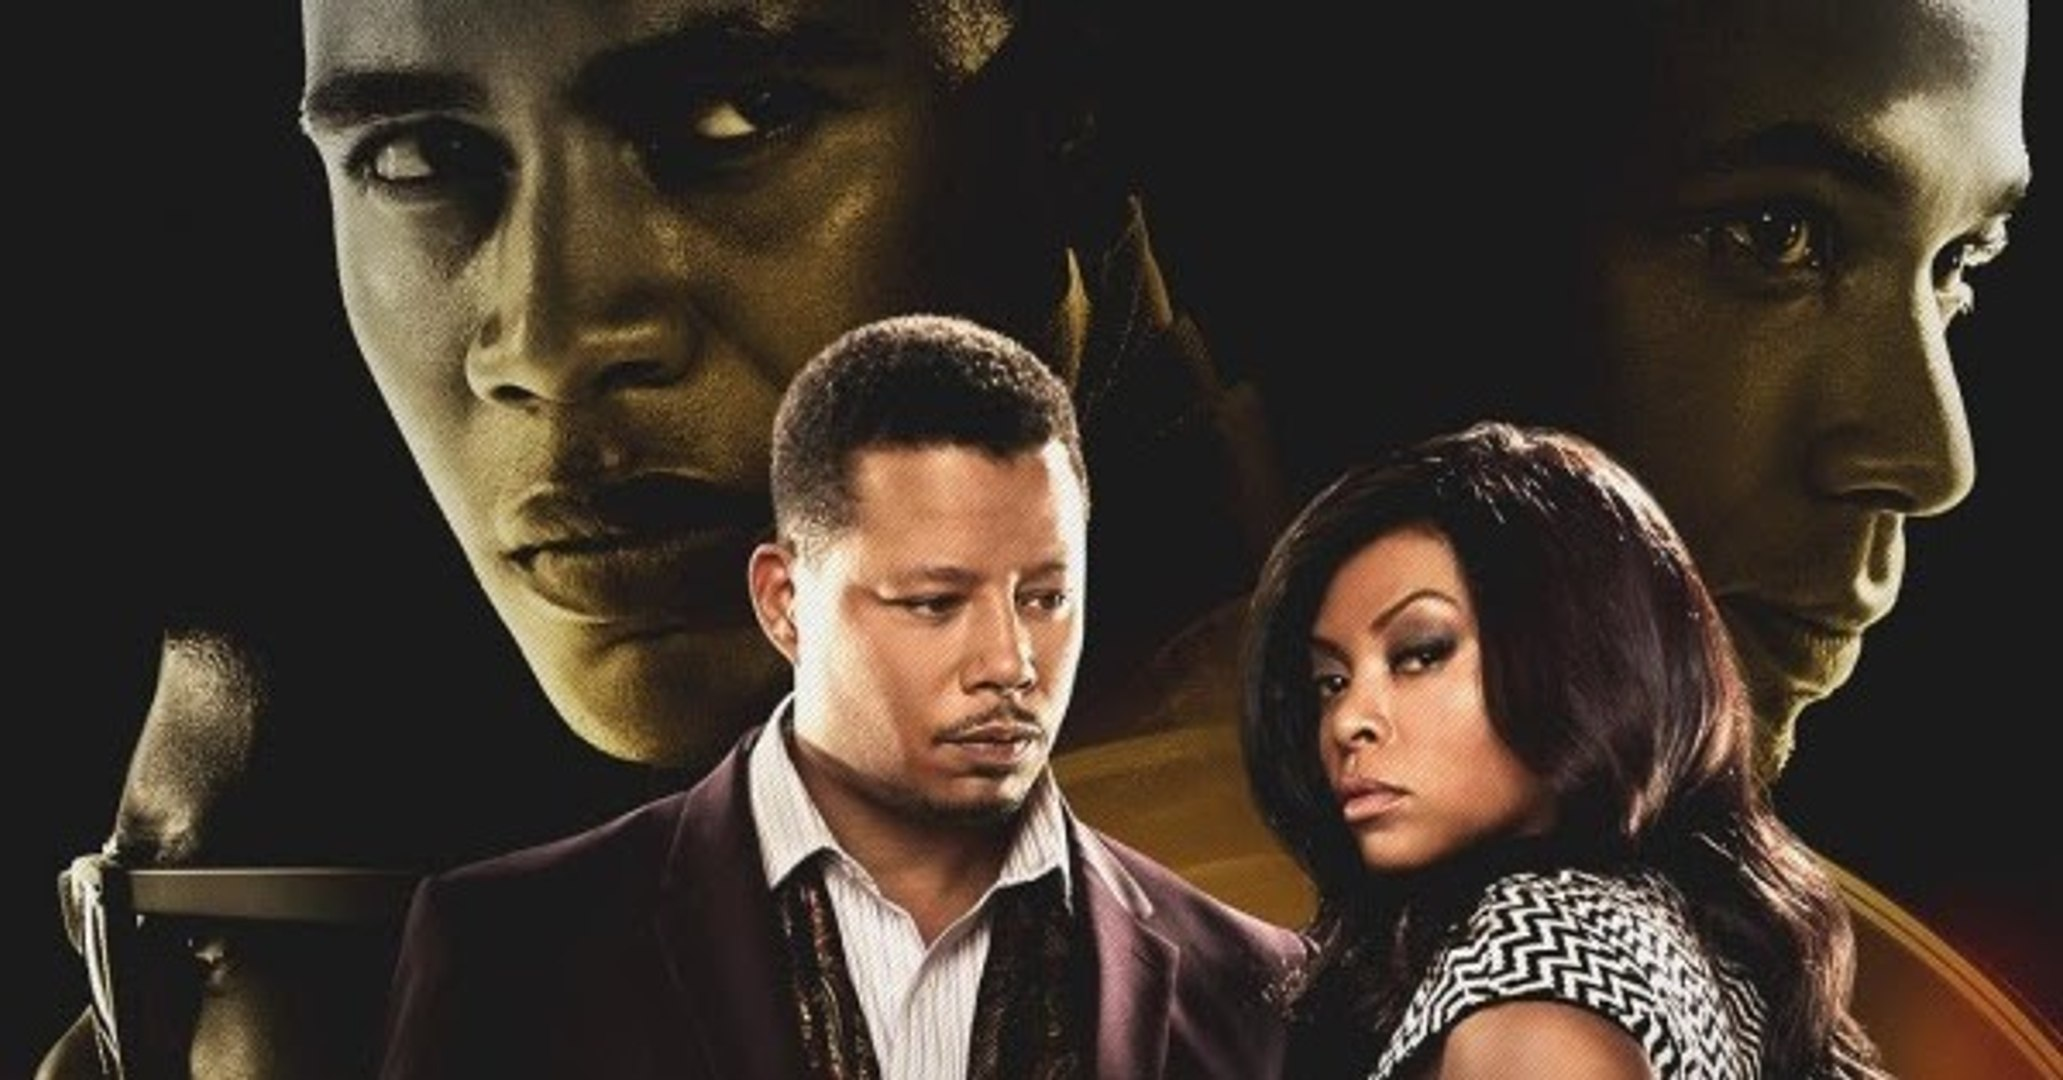 Empire Season 6 Episode 11 (FOX) Watch Online